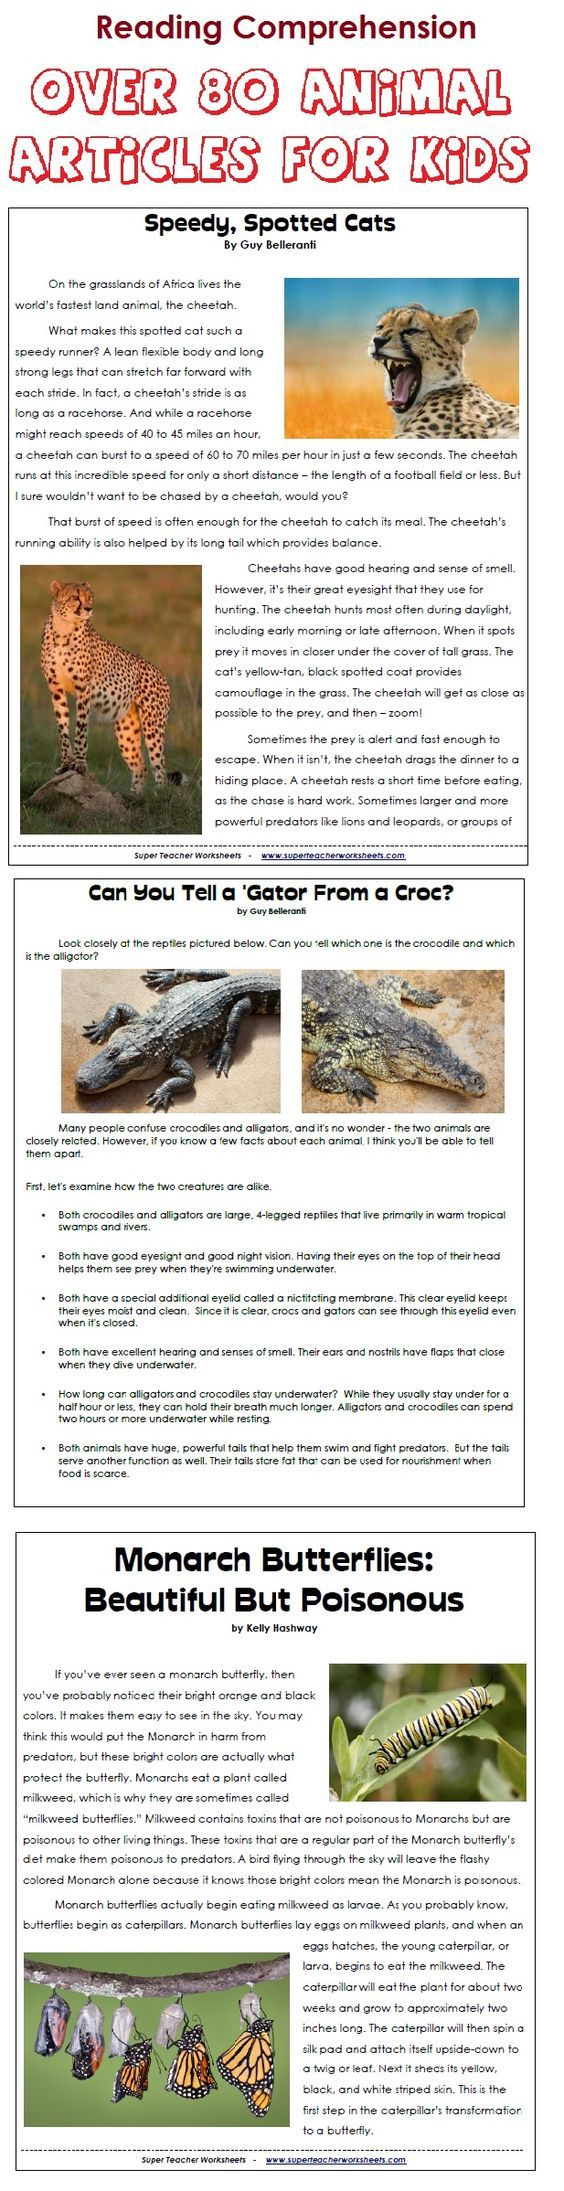 Download 80+ printable animal articles, with reading ...